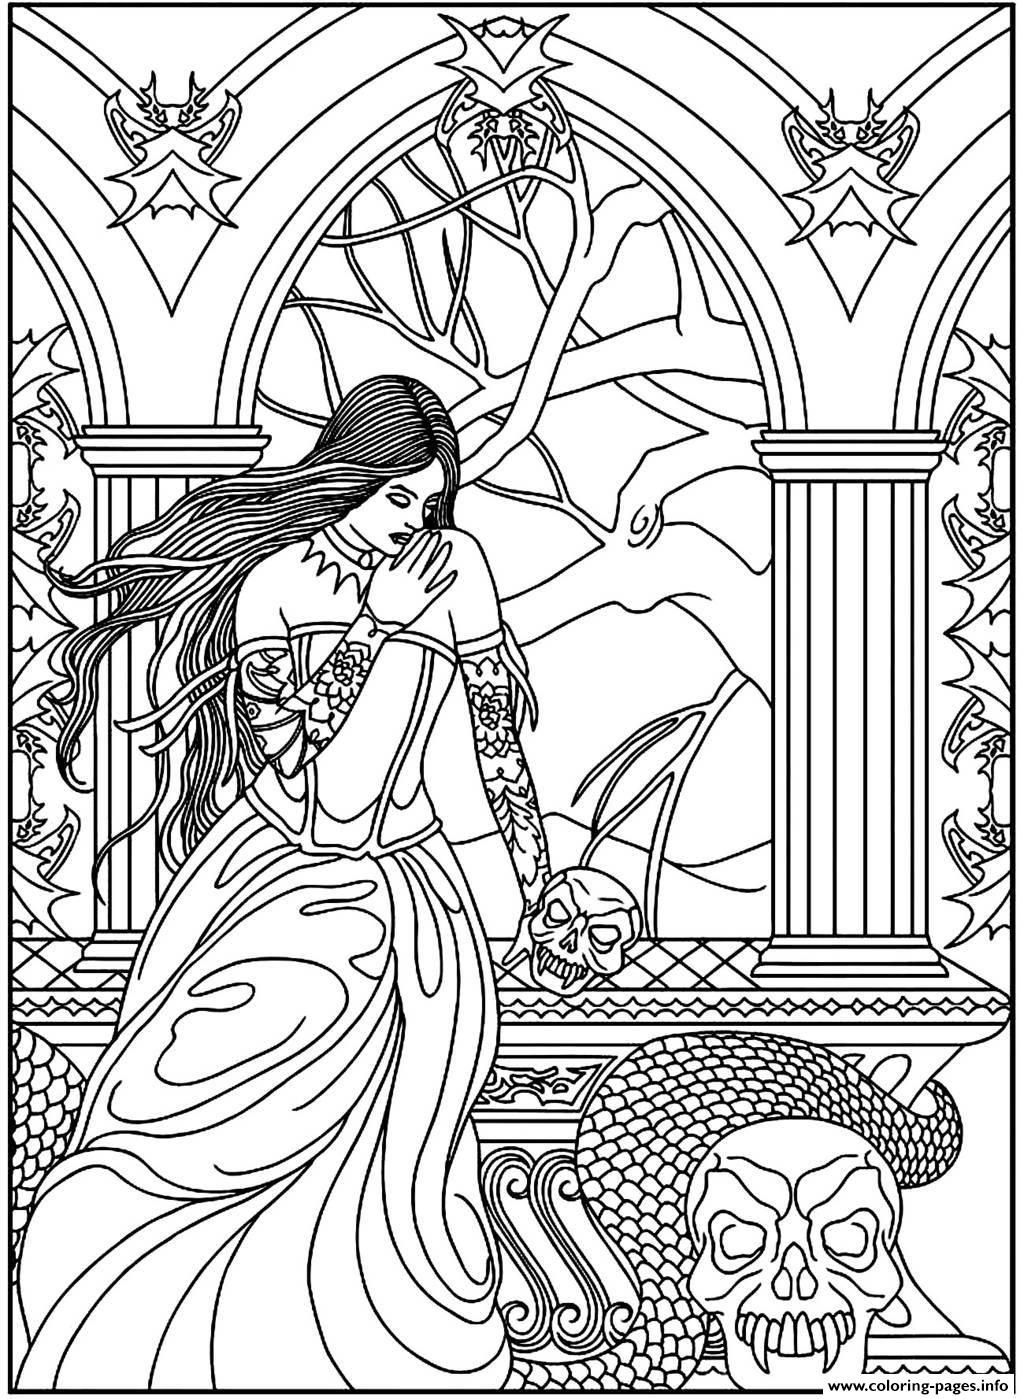 Free coloring pages snakes - Adult Fantasy Woman Skulls Snake Coloring Pages Printable And Coloring Book To Print For Free Find More Coloring Pages Online For Kids And Adults Of Adult